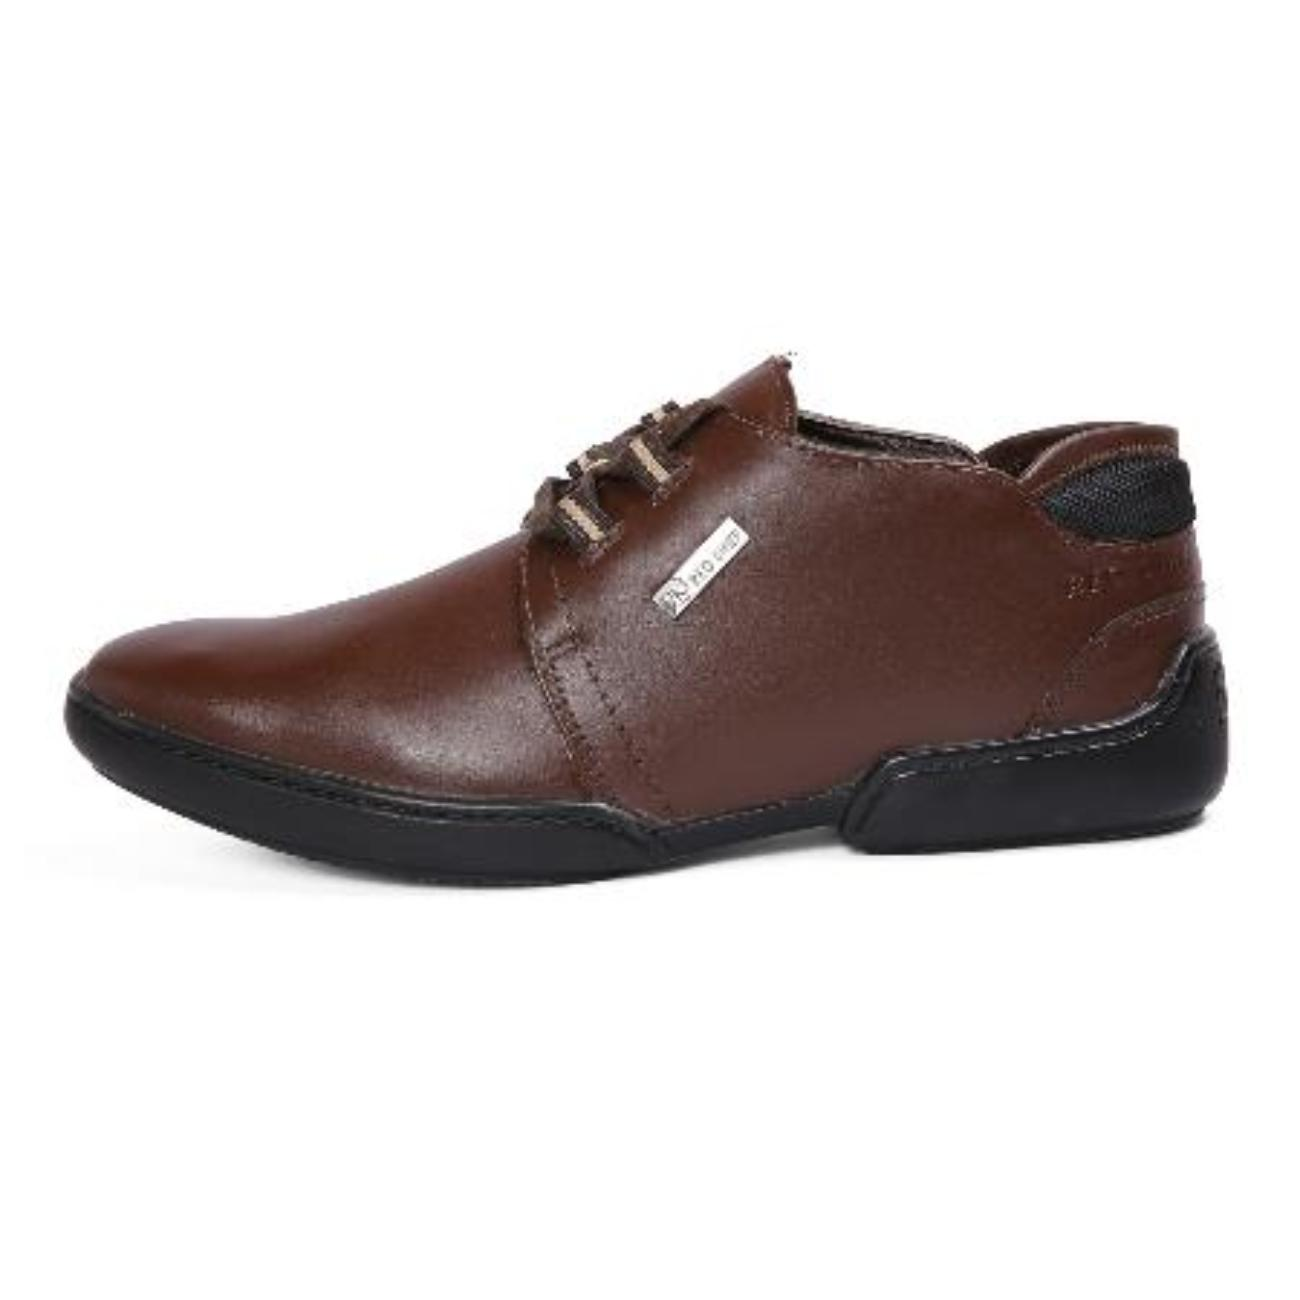 brown casual leather shoes side view_2